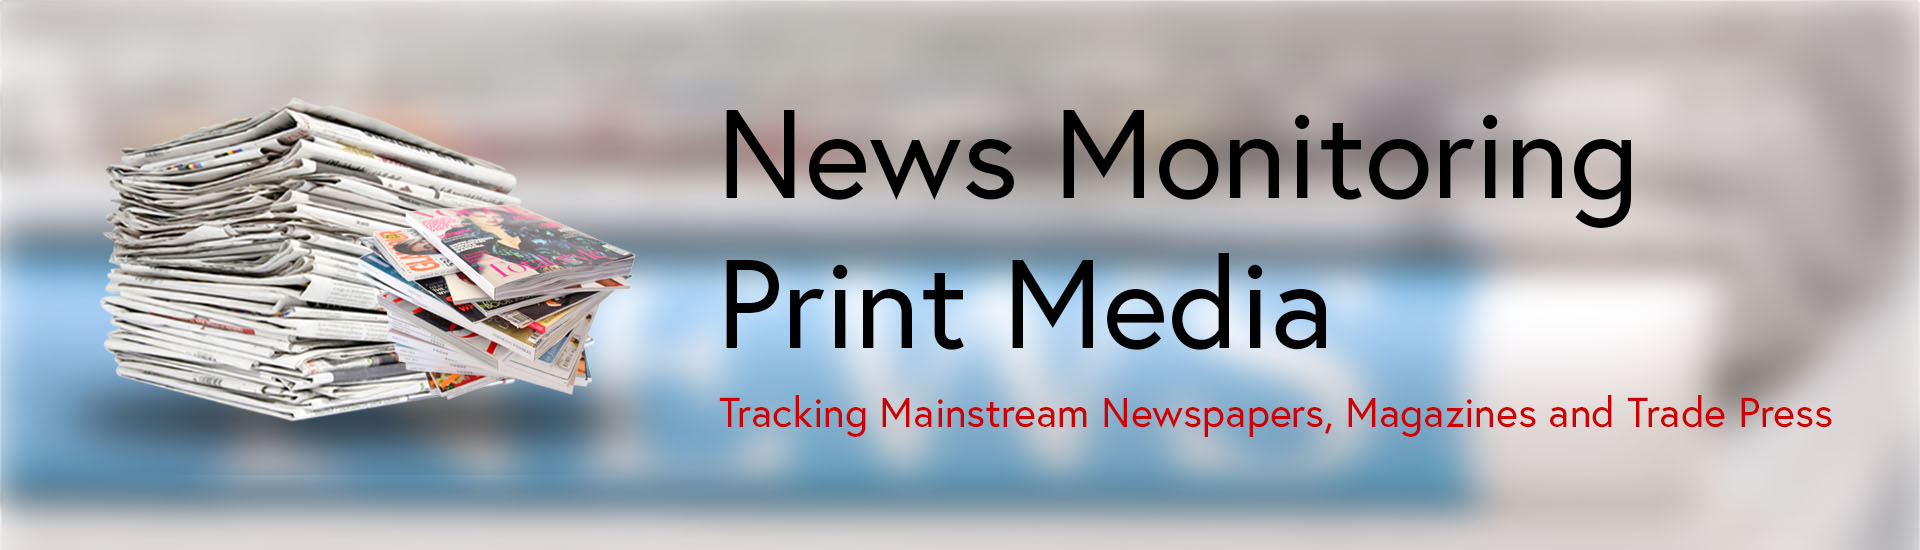 News Monitoring - Print Media